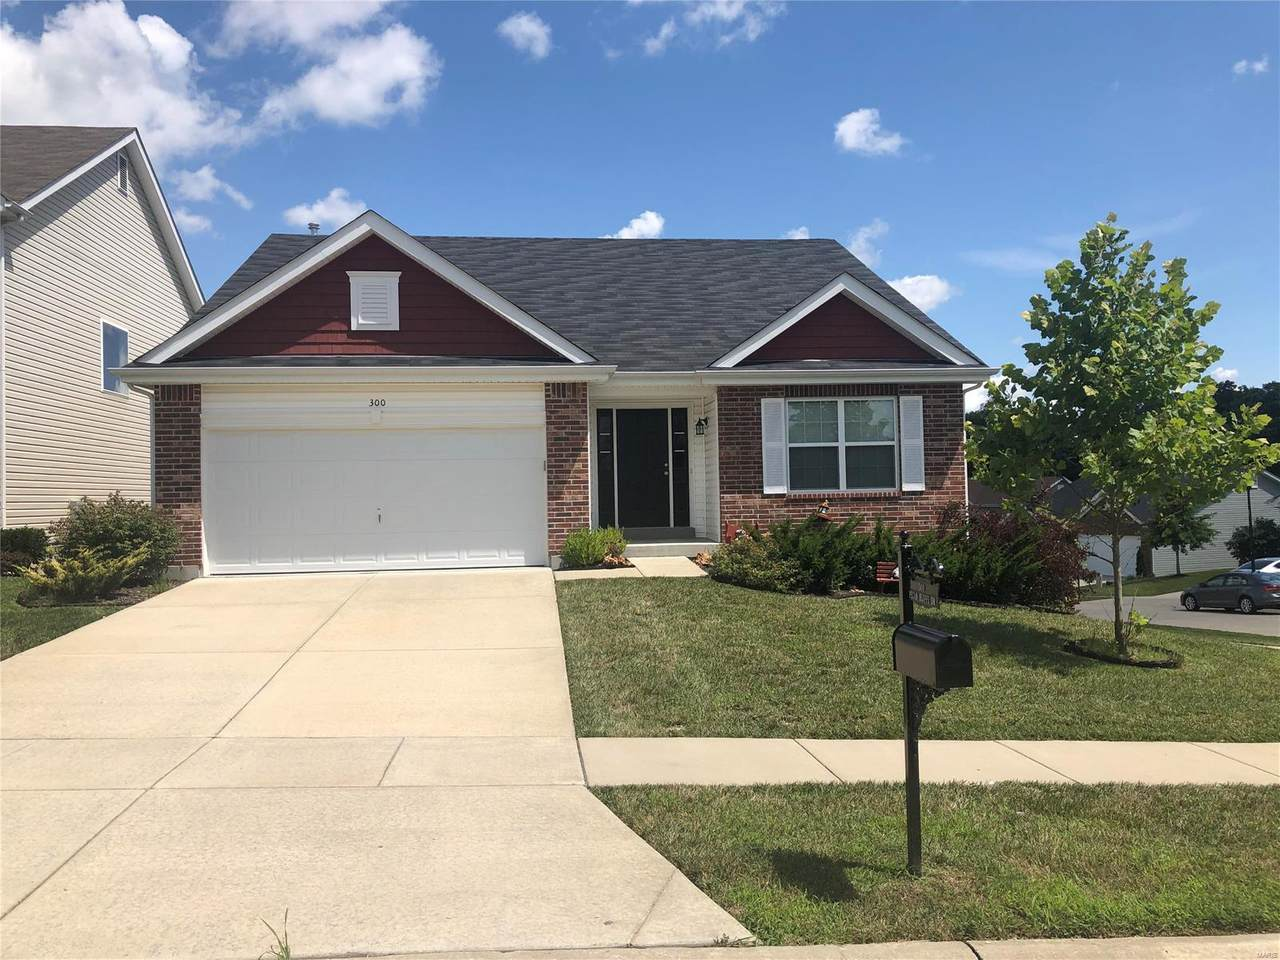 300 Pecan Bluffs Drive - Photo 1